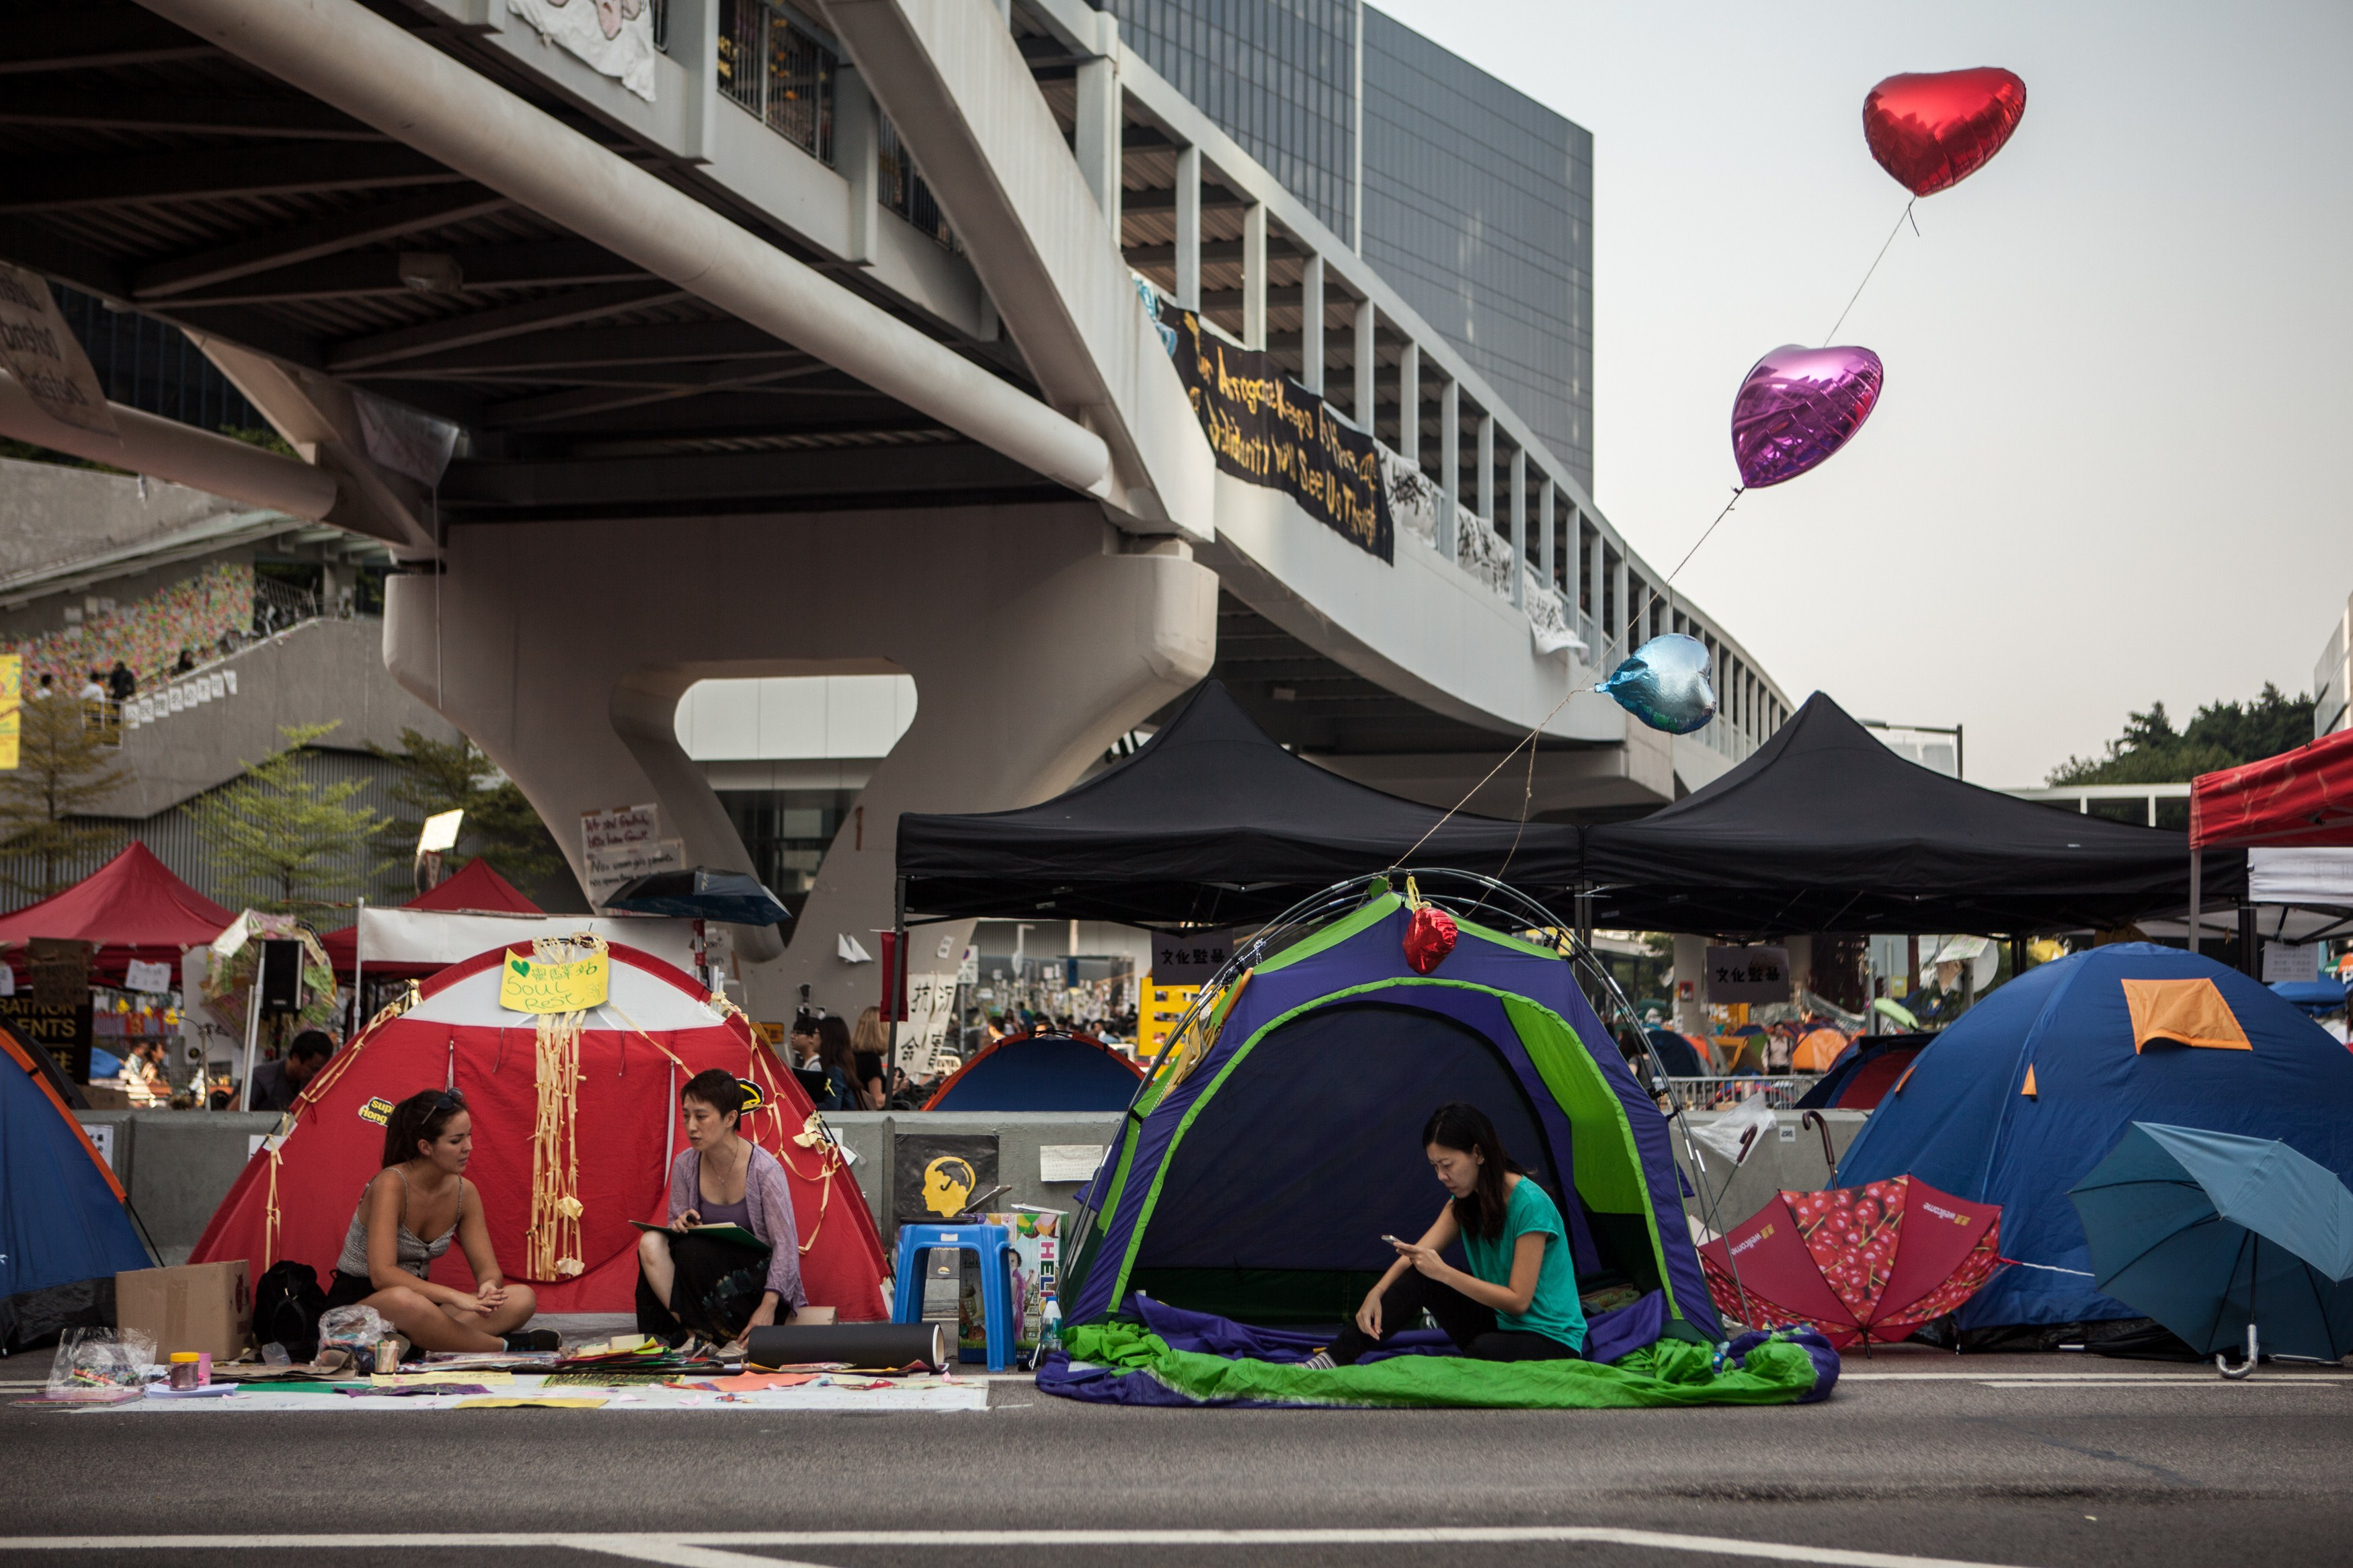 Members of the Occupied movement rest in their tents on a highway blocked by protestor barricades in the Admiralty district of Hong Kong on October 16, 2014.